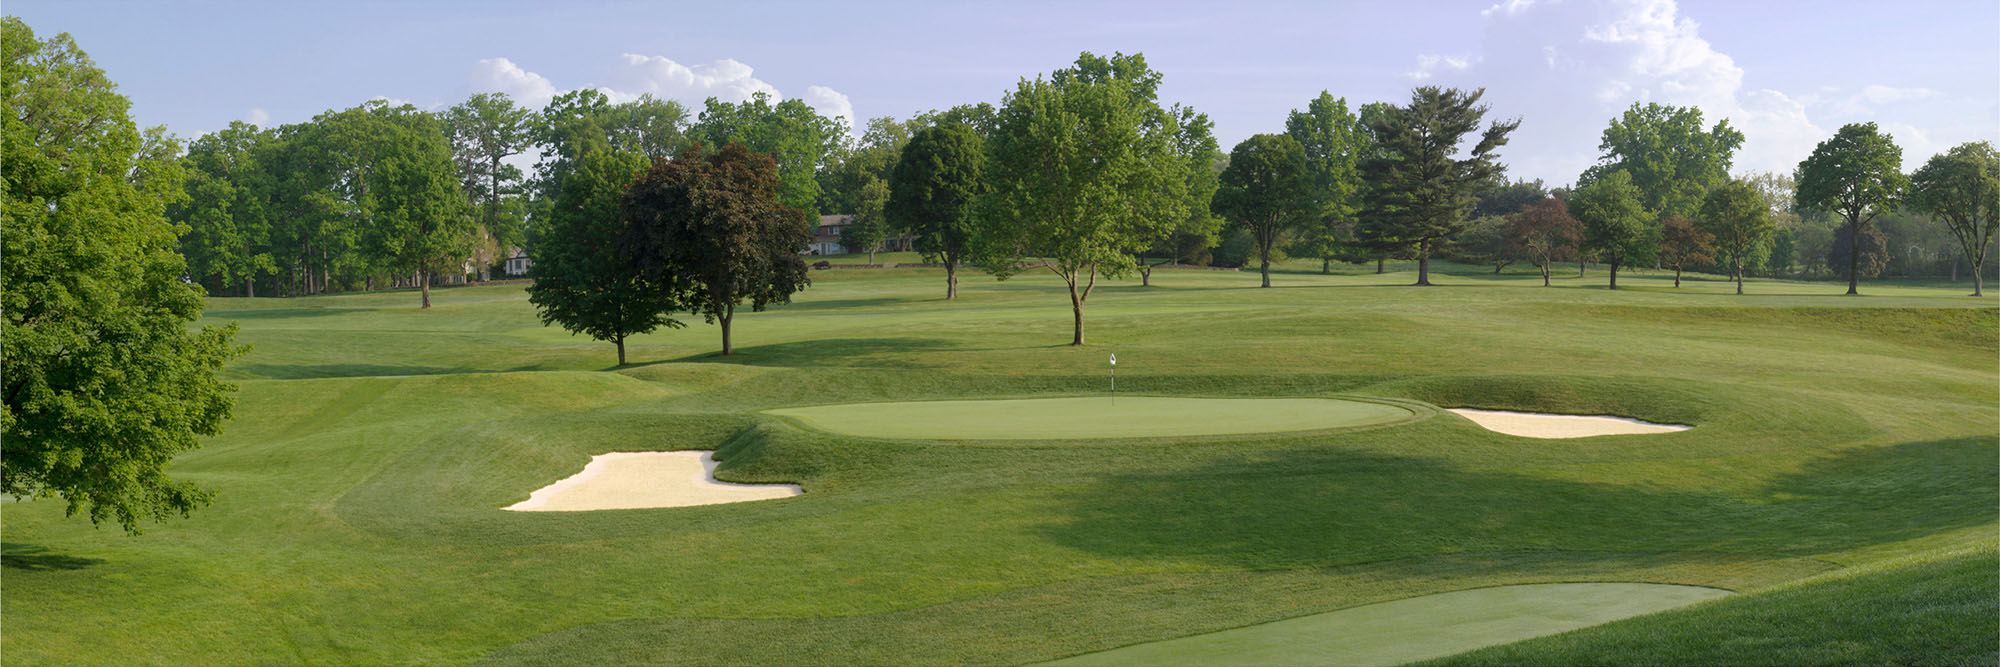 Golf Course Image - Pittsburgh Field Club No. 8